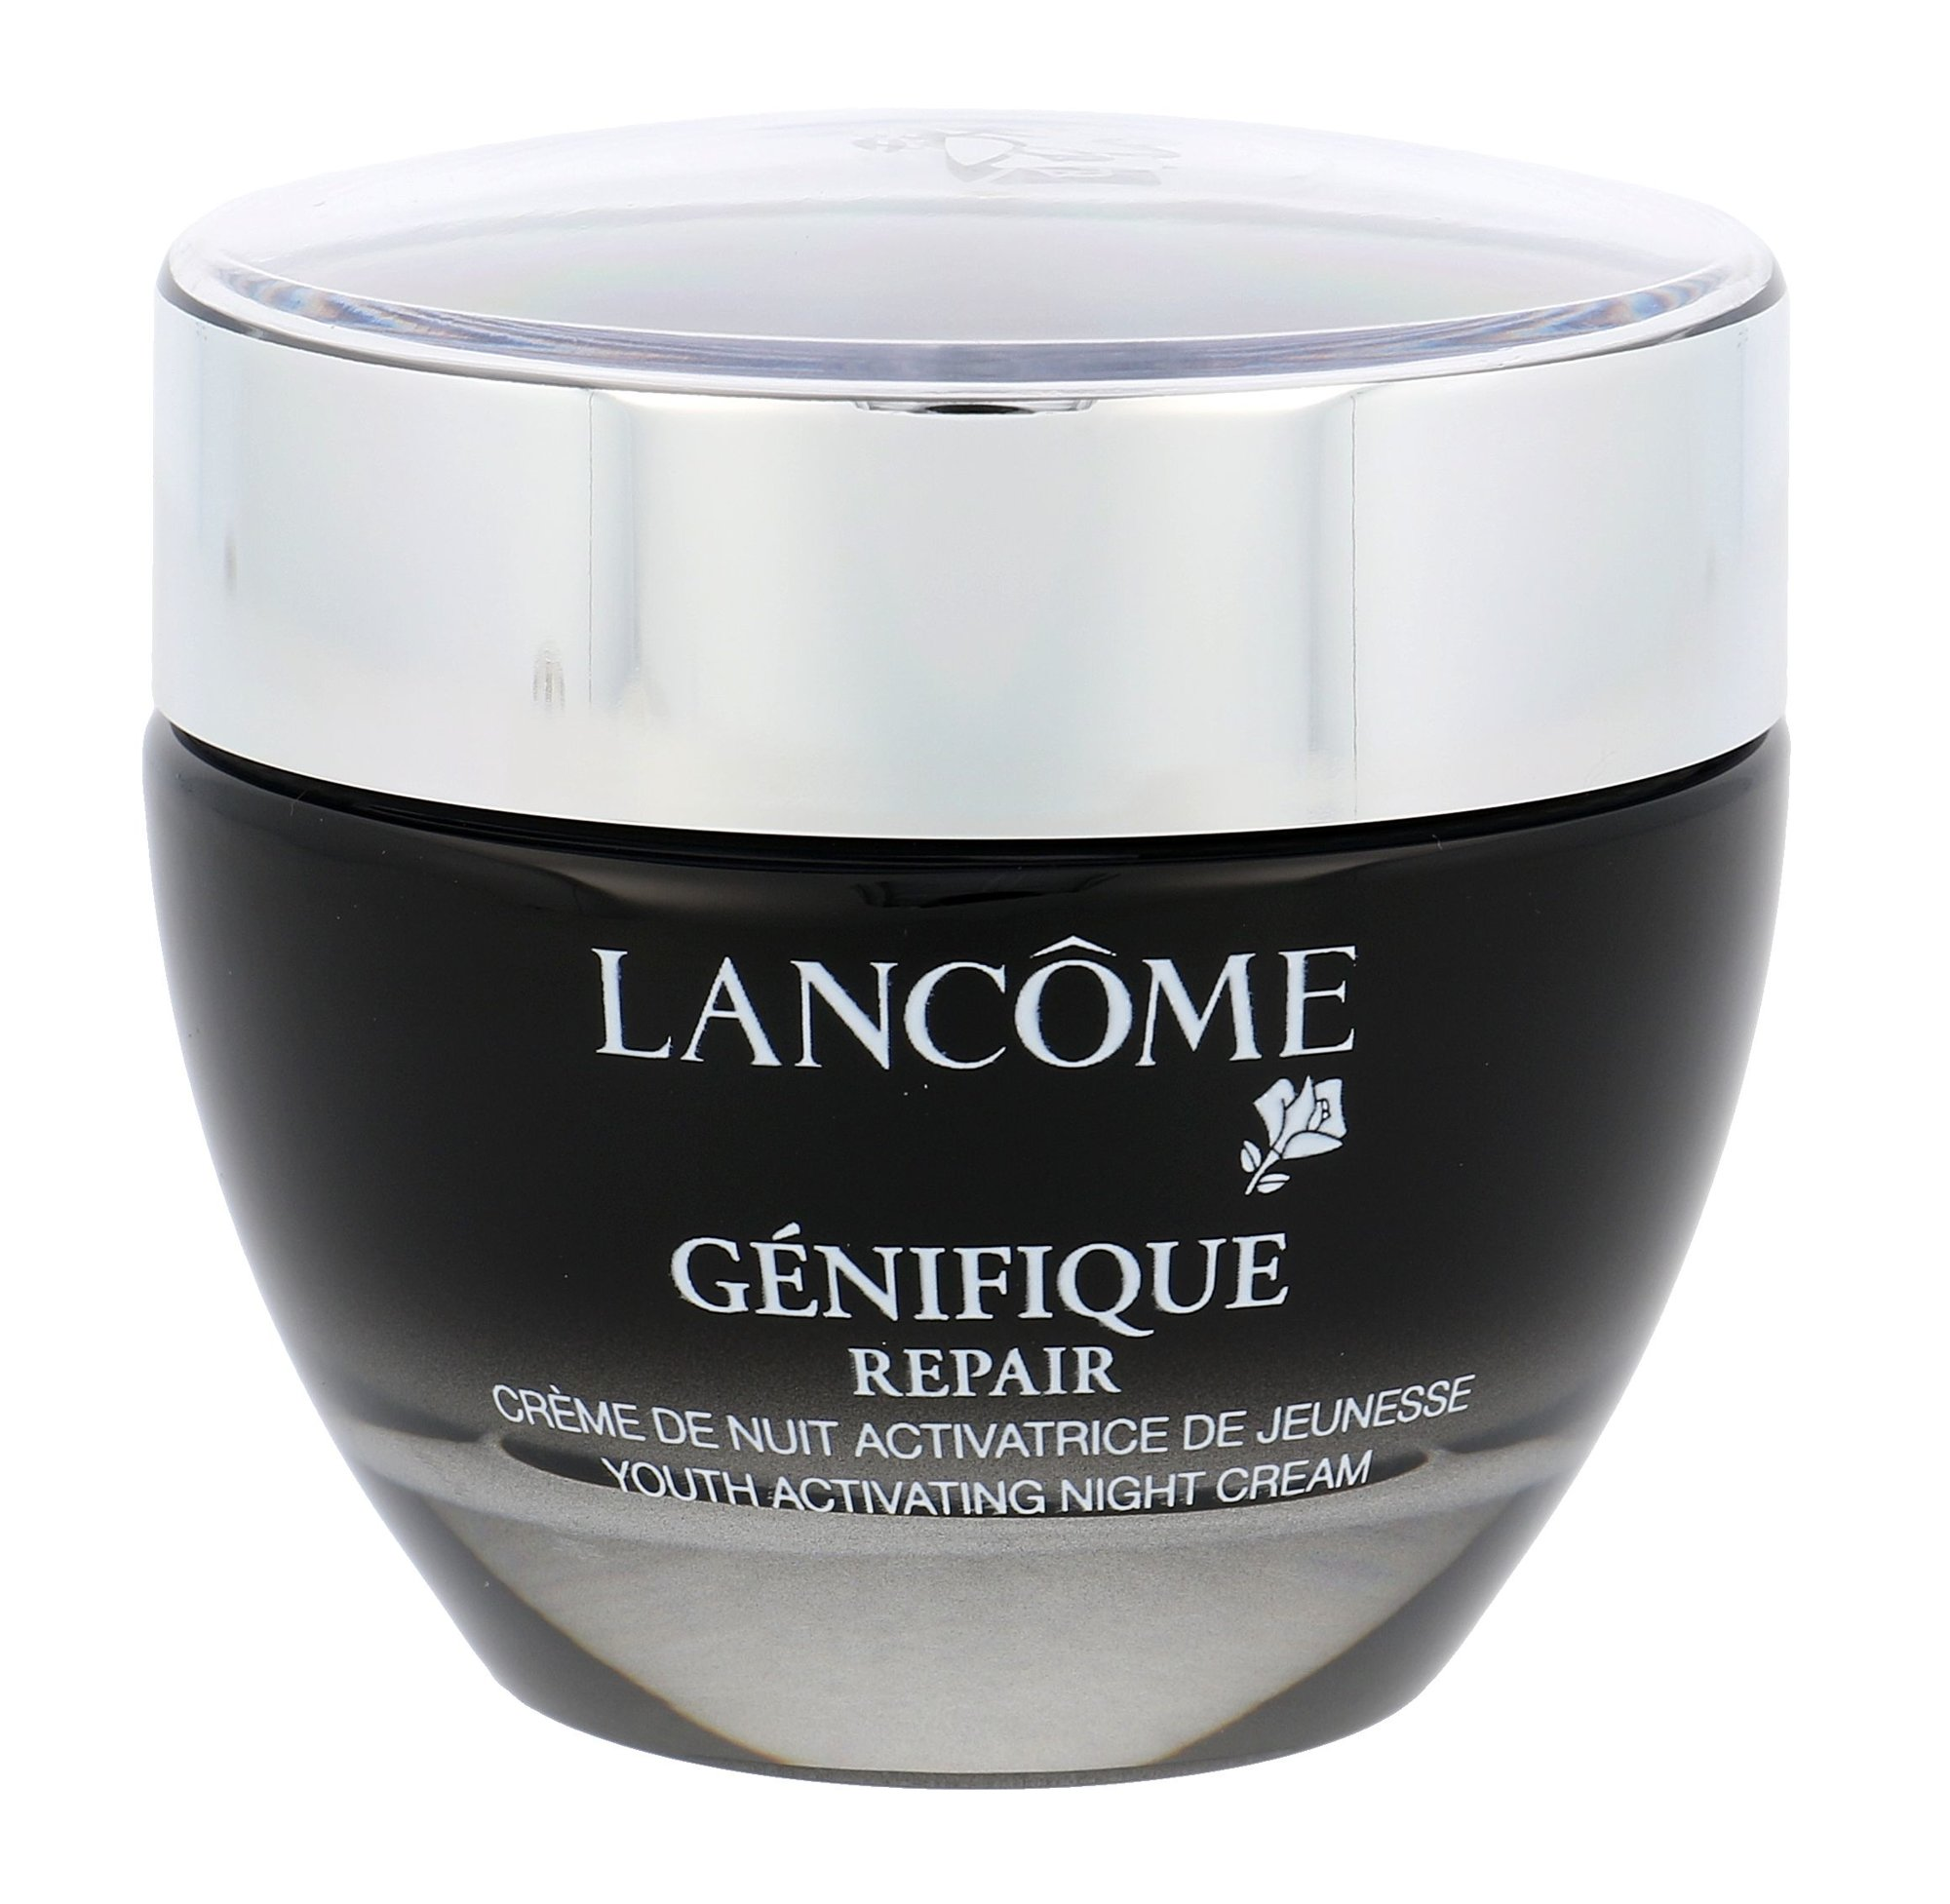 Lancôme Genifique Repair Cosmetic 50ml